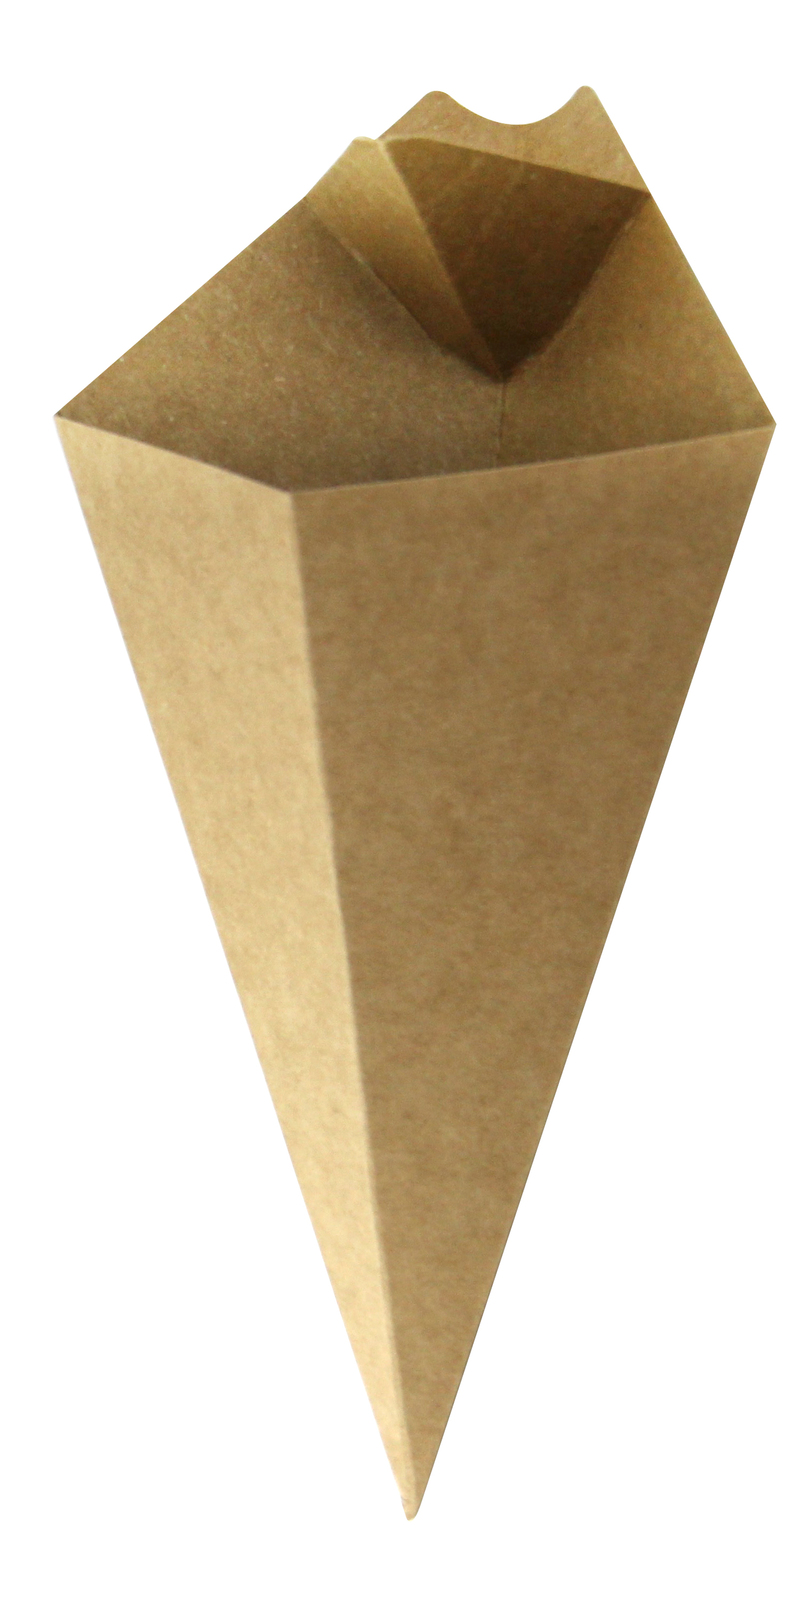 Kraft Paper Cone With Built-In Sauce Cup - 8.9 in.